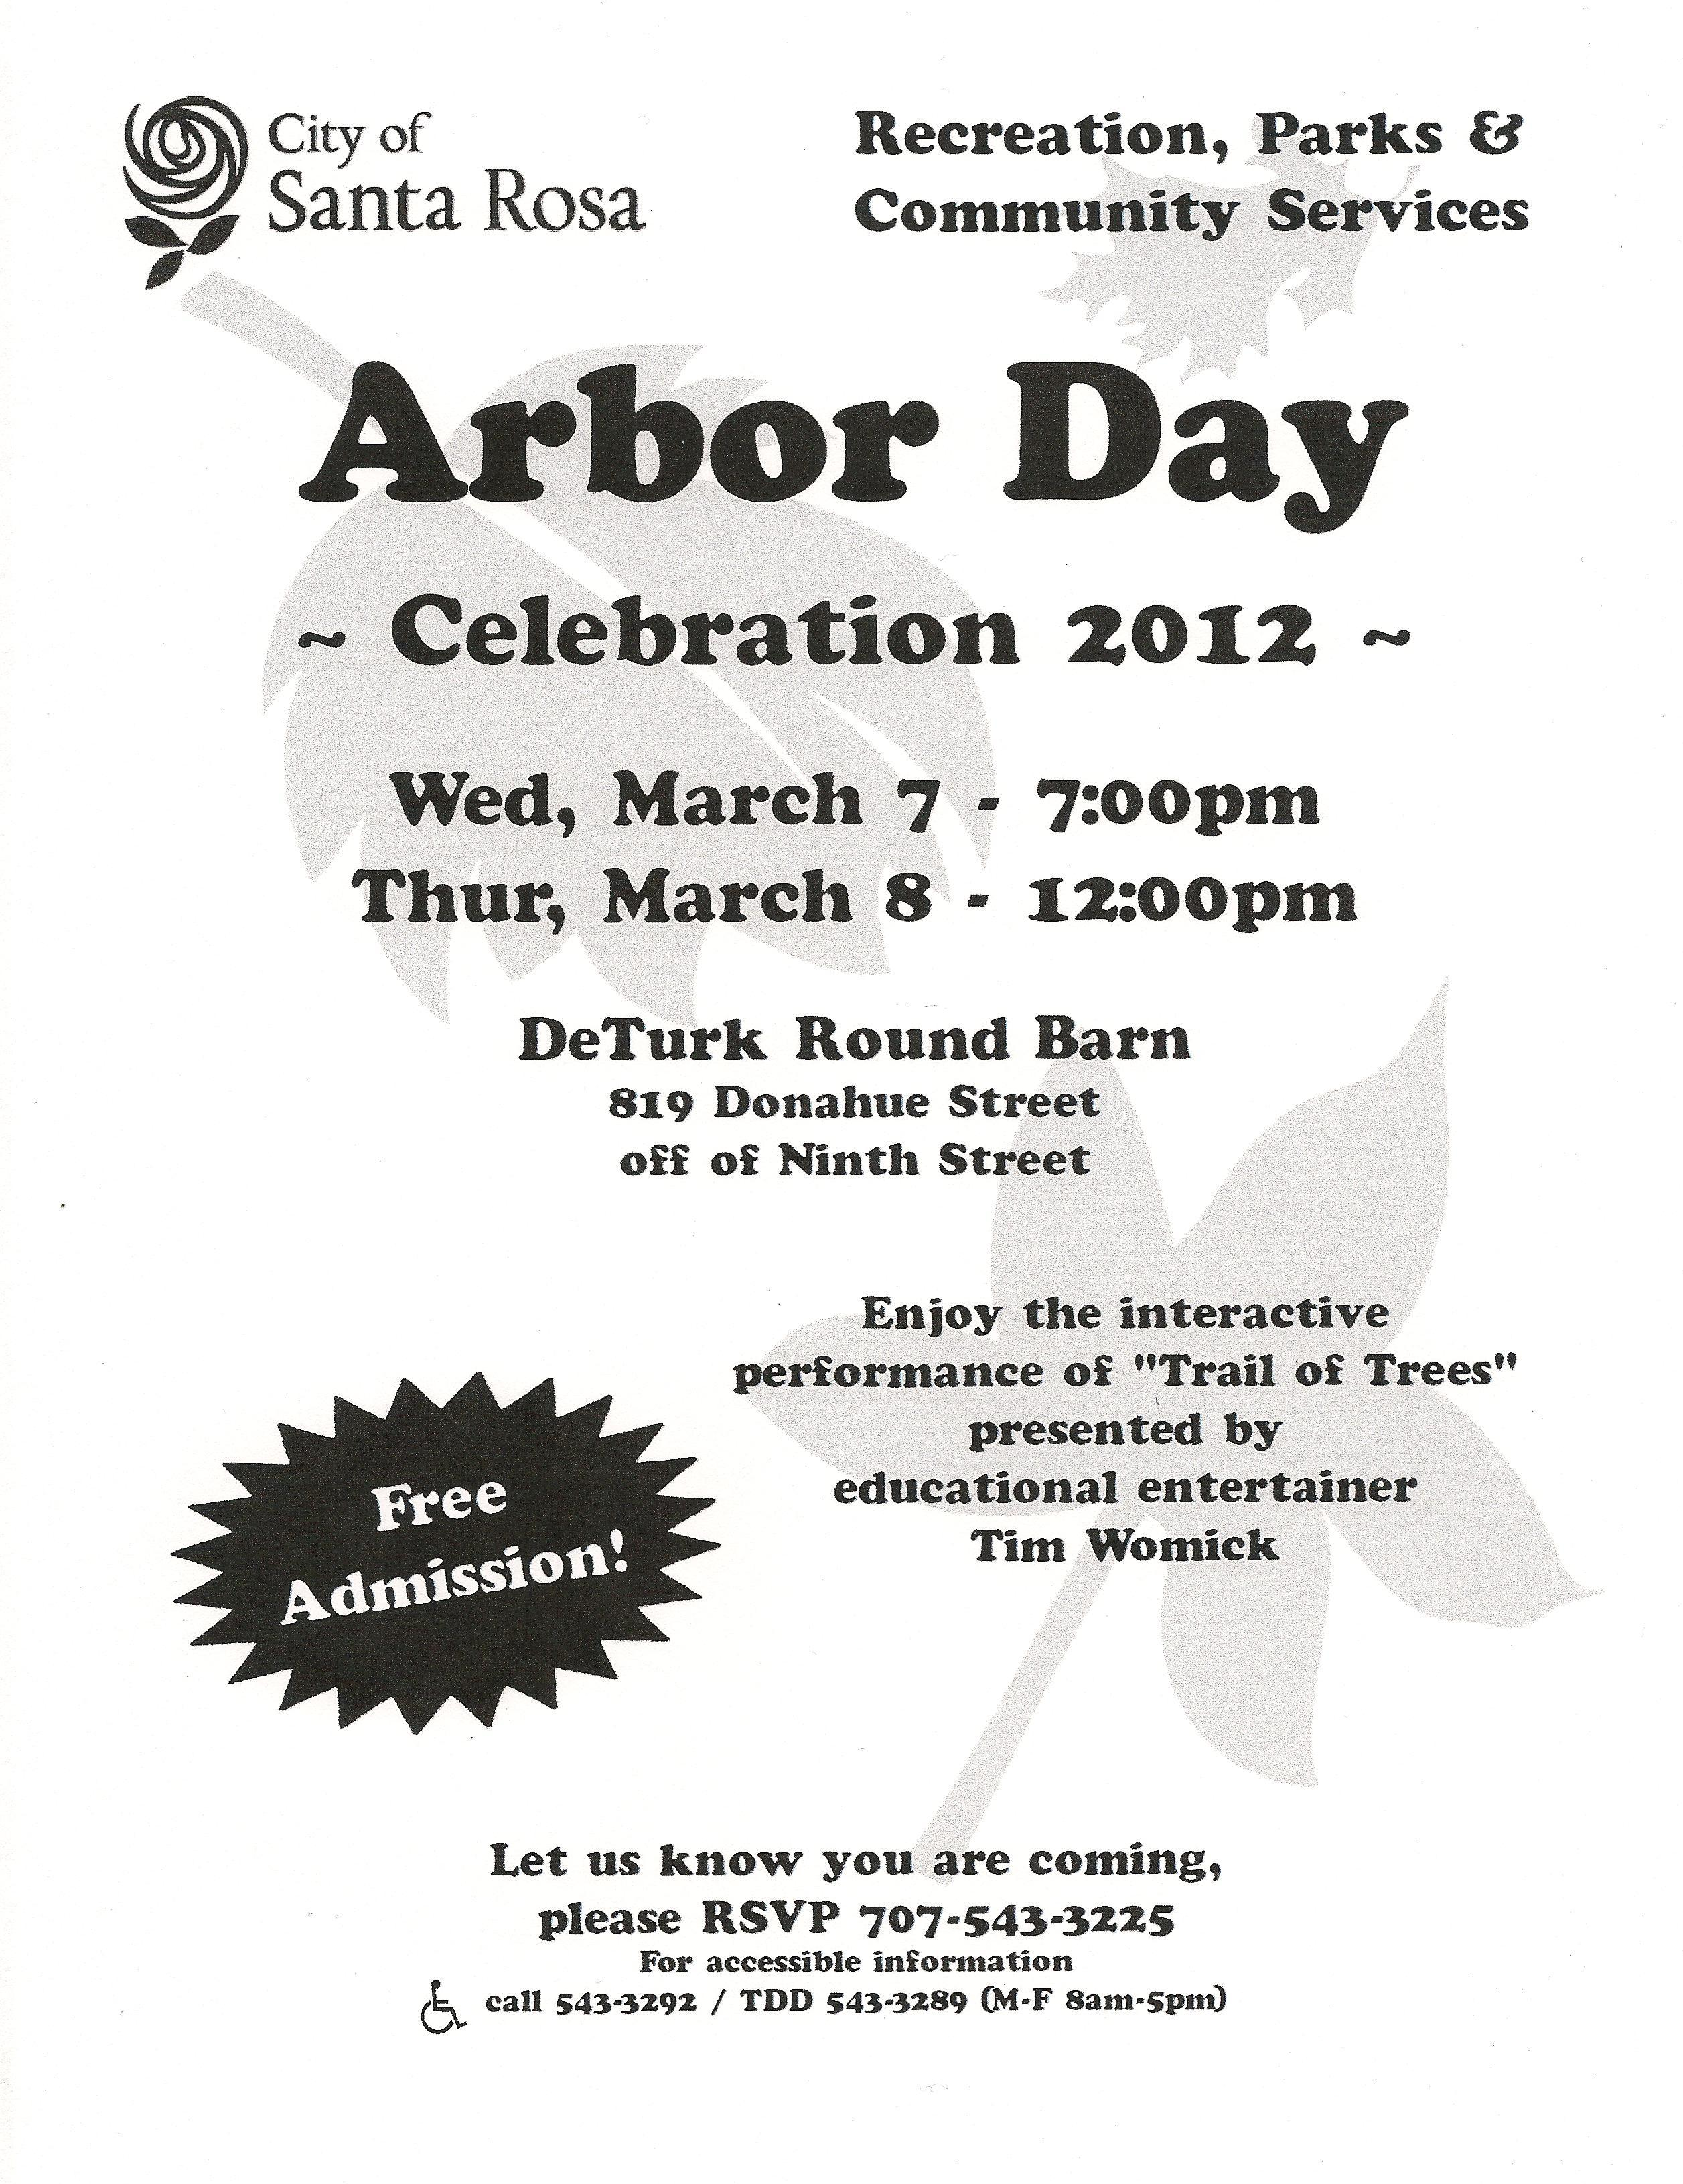 Arbor Day at DeTurk Round Barn